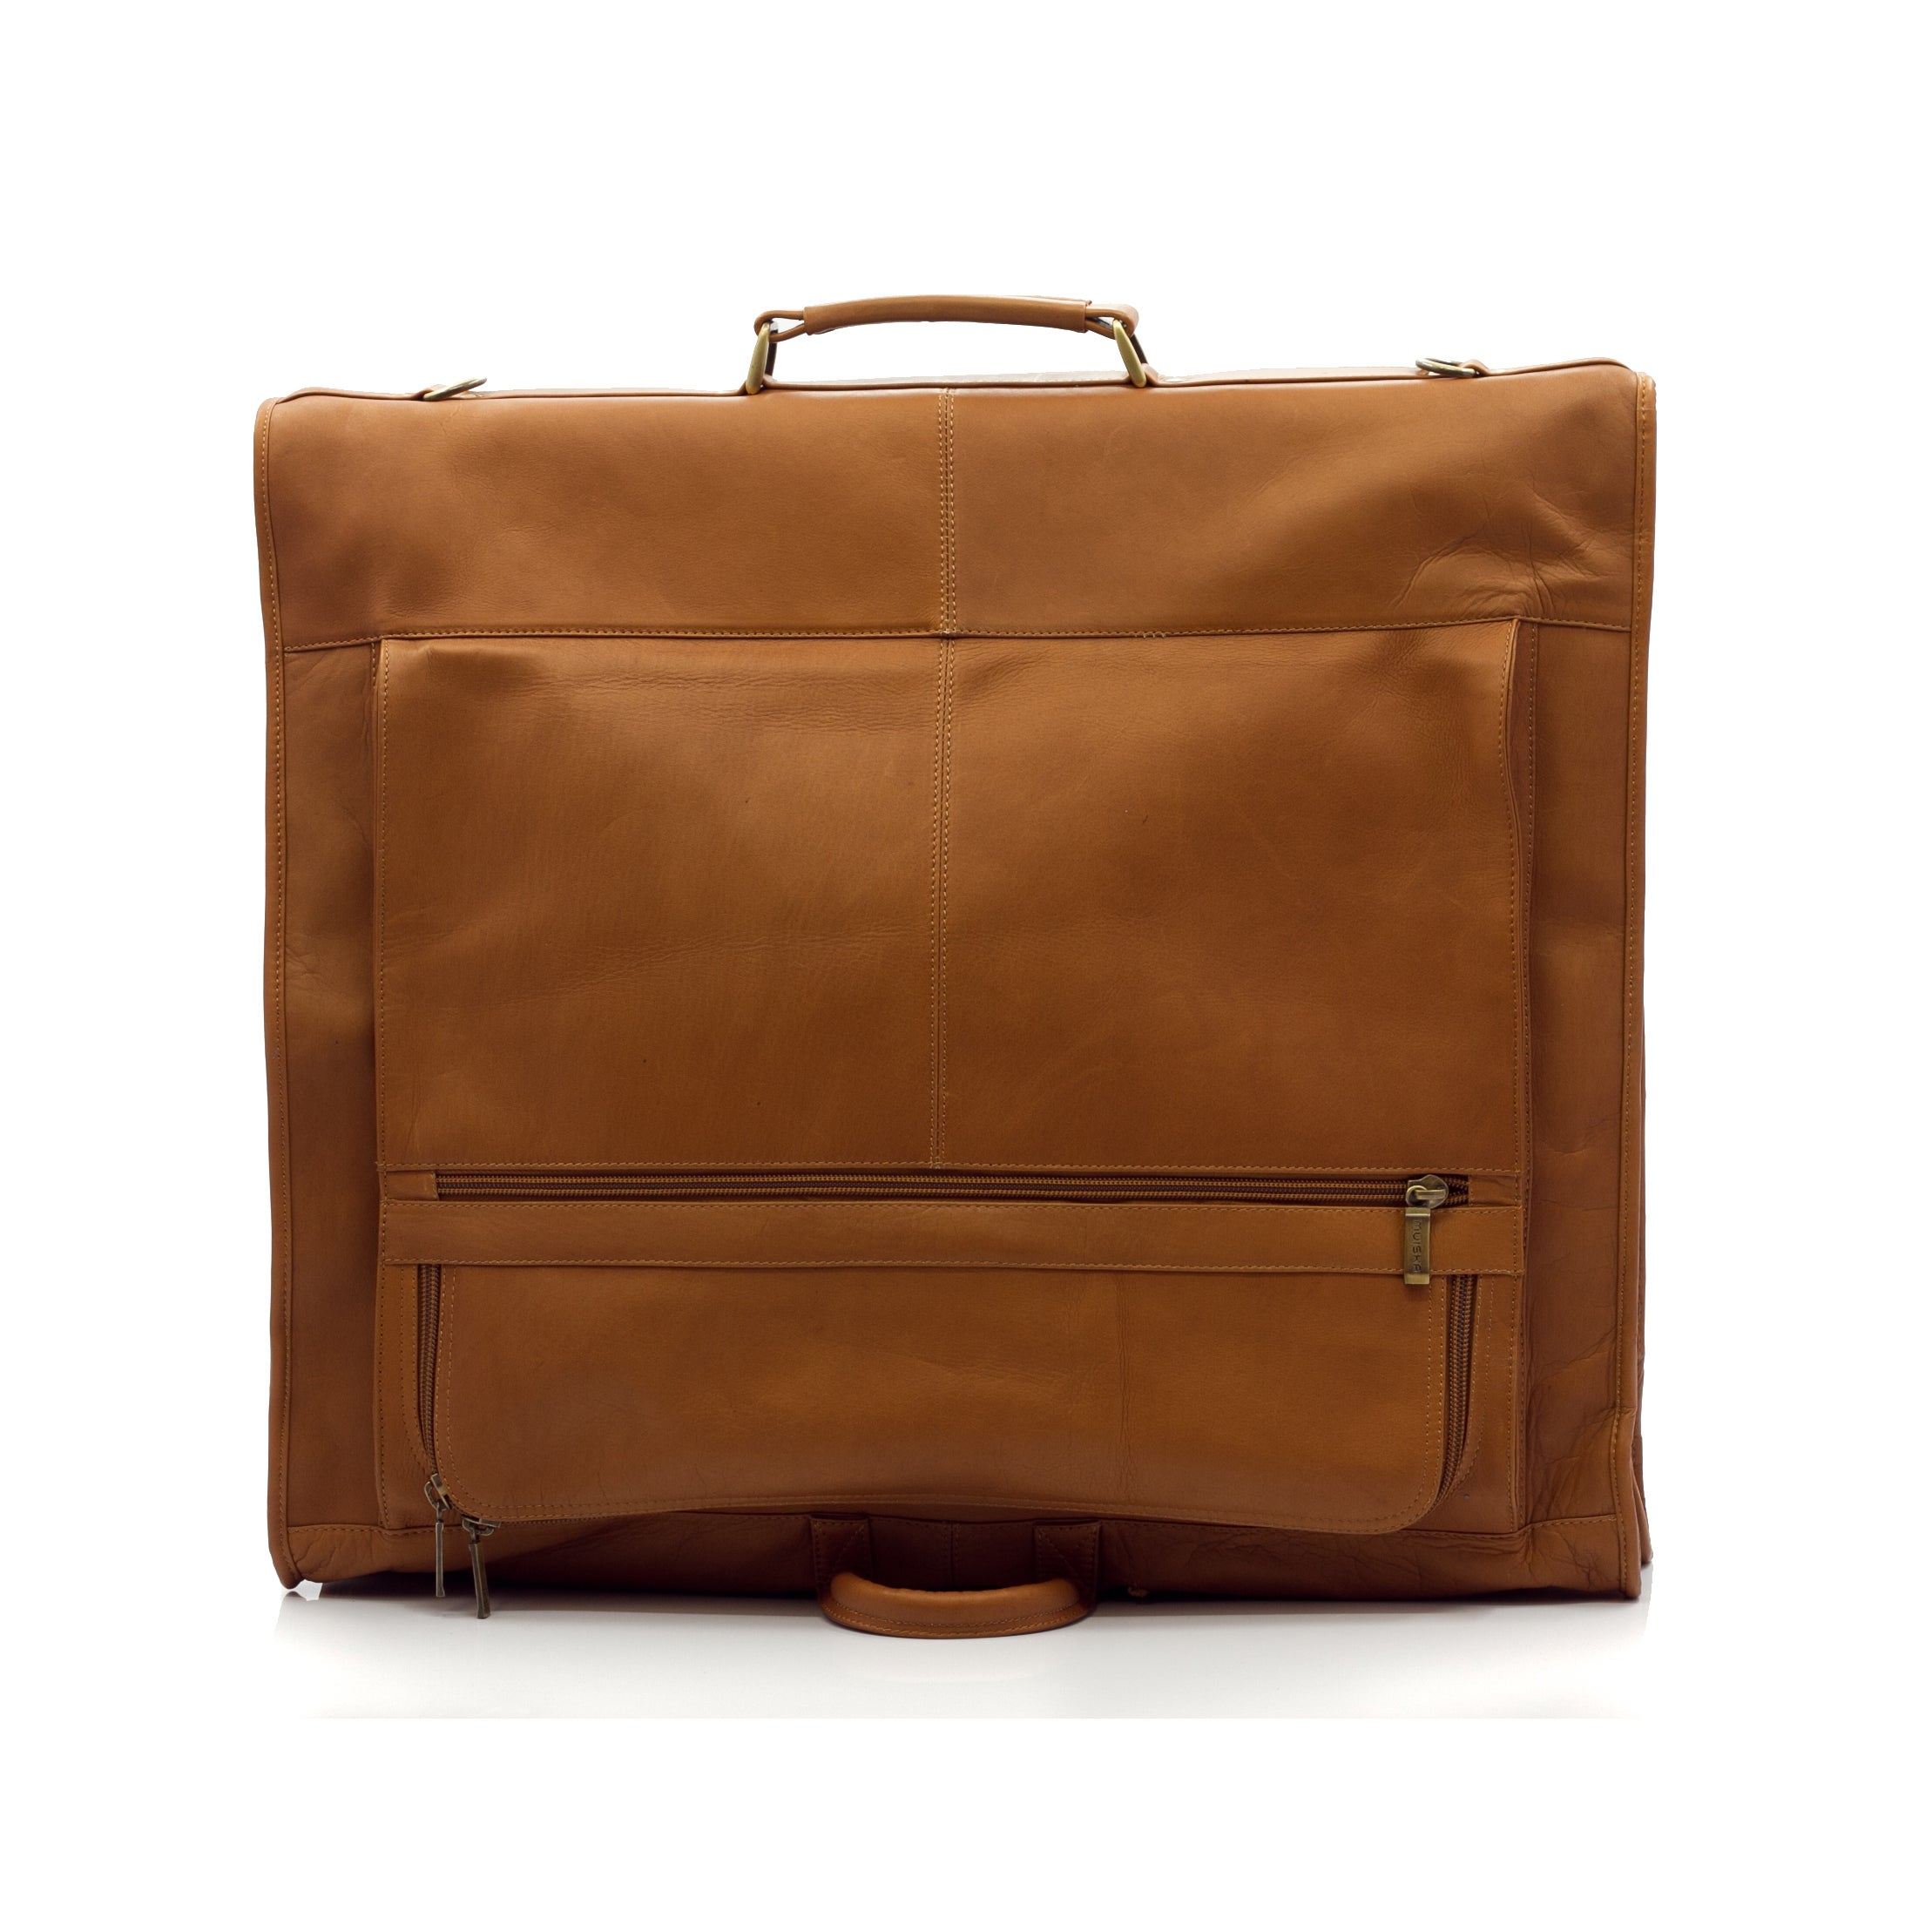 c4cad1660298 Shop Muiska Vaquetta Leather Havana Carry-all Garment Bag - Free Shipping  Today - Overstock.com - 10630535